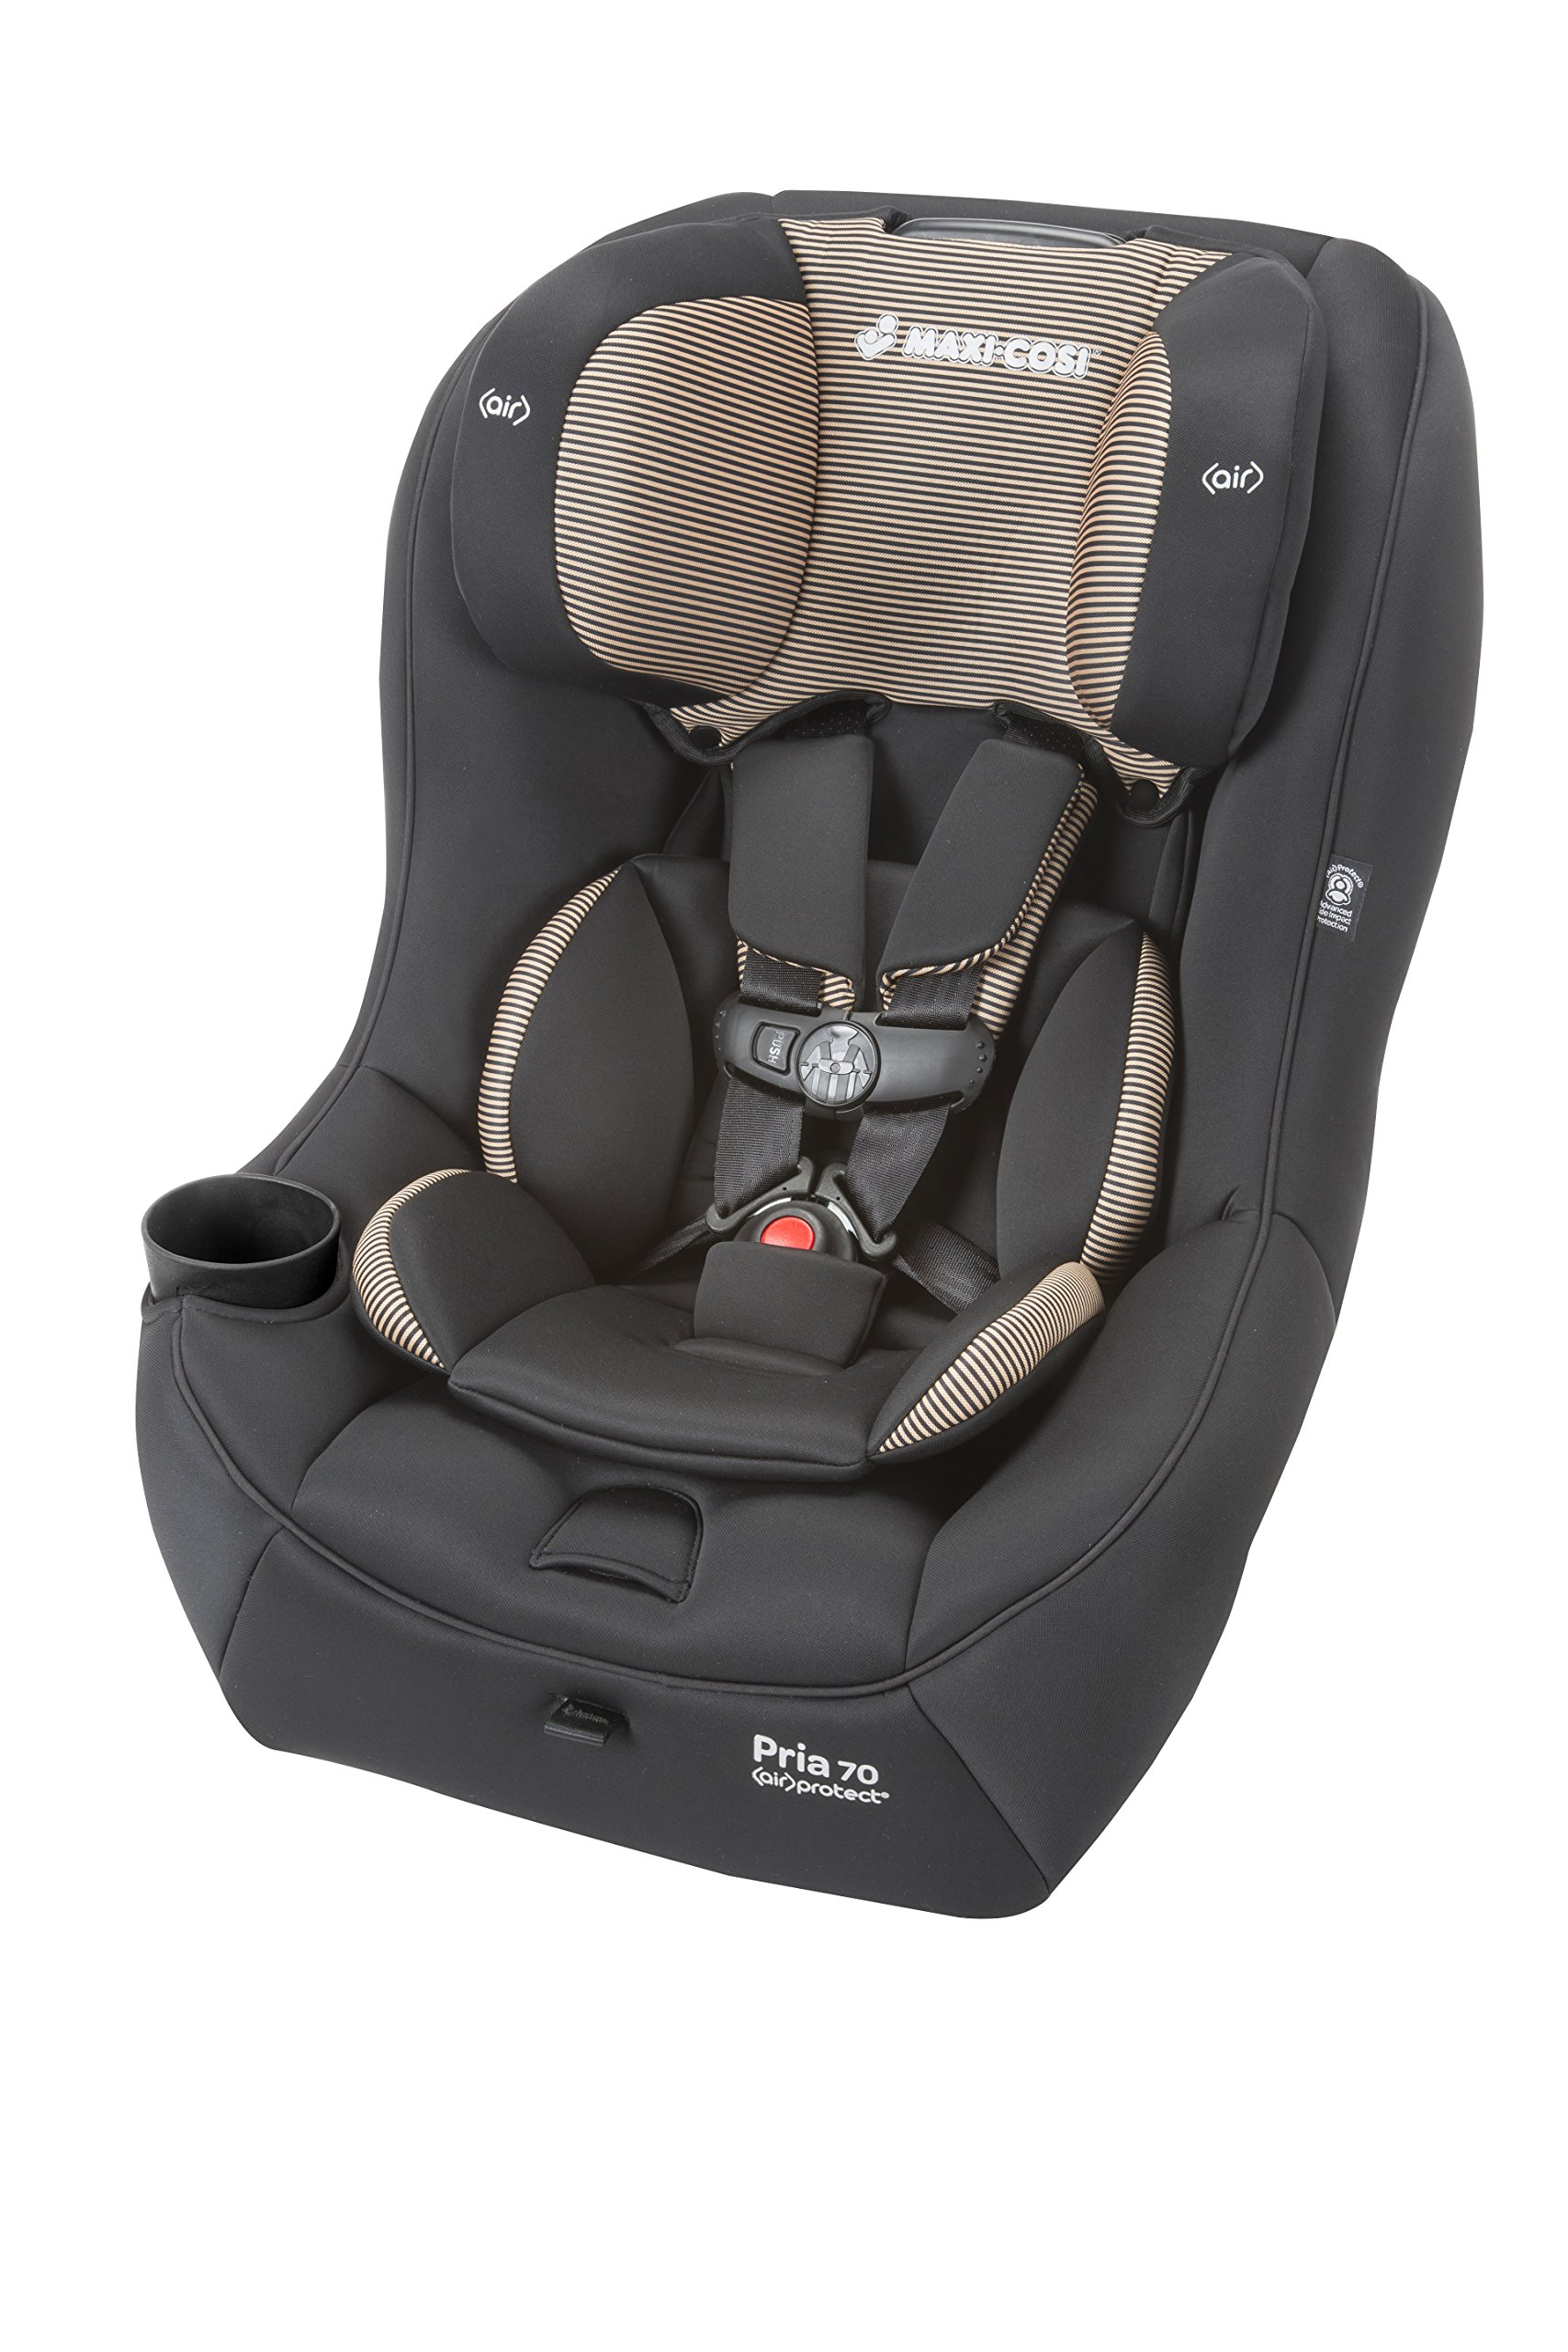 maxi cosi pria 70 convertible car seat black. Black Bedroom Furniture Sets. Home Design Ideas